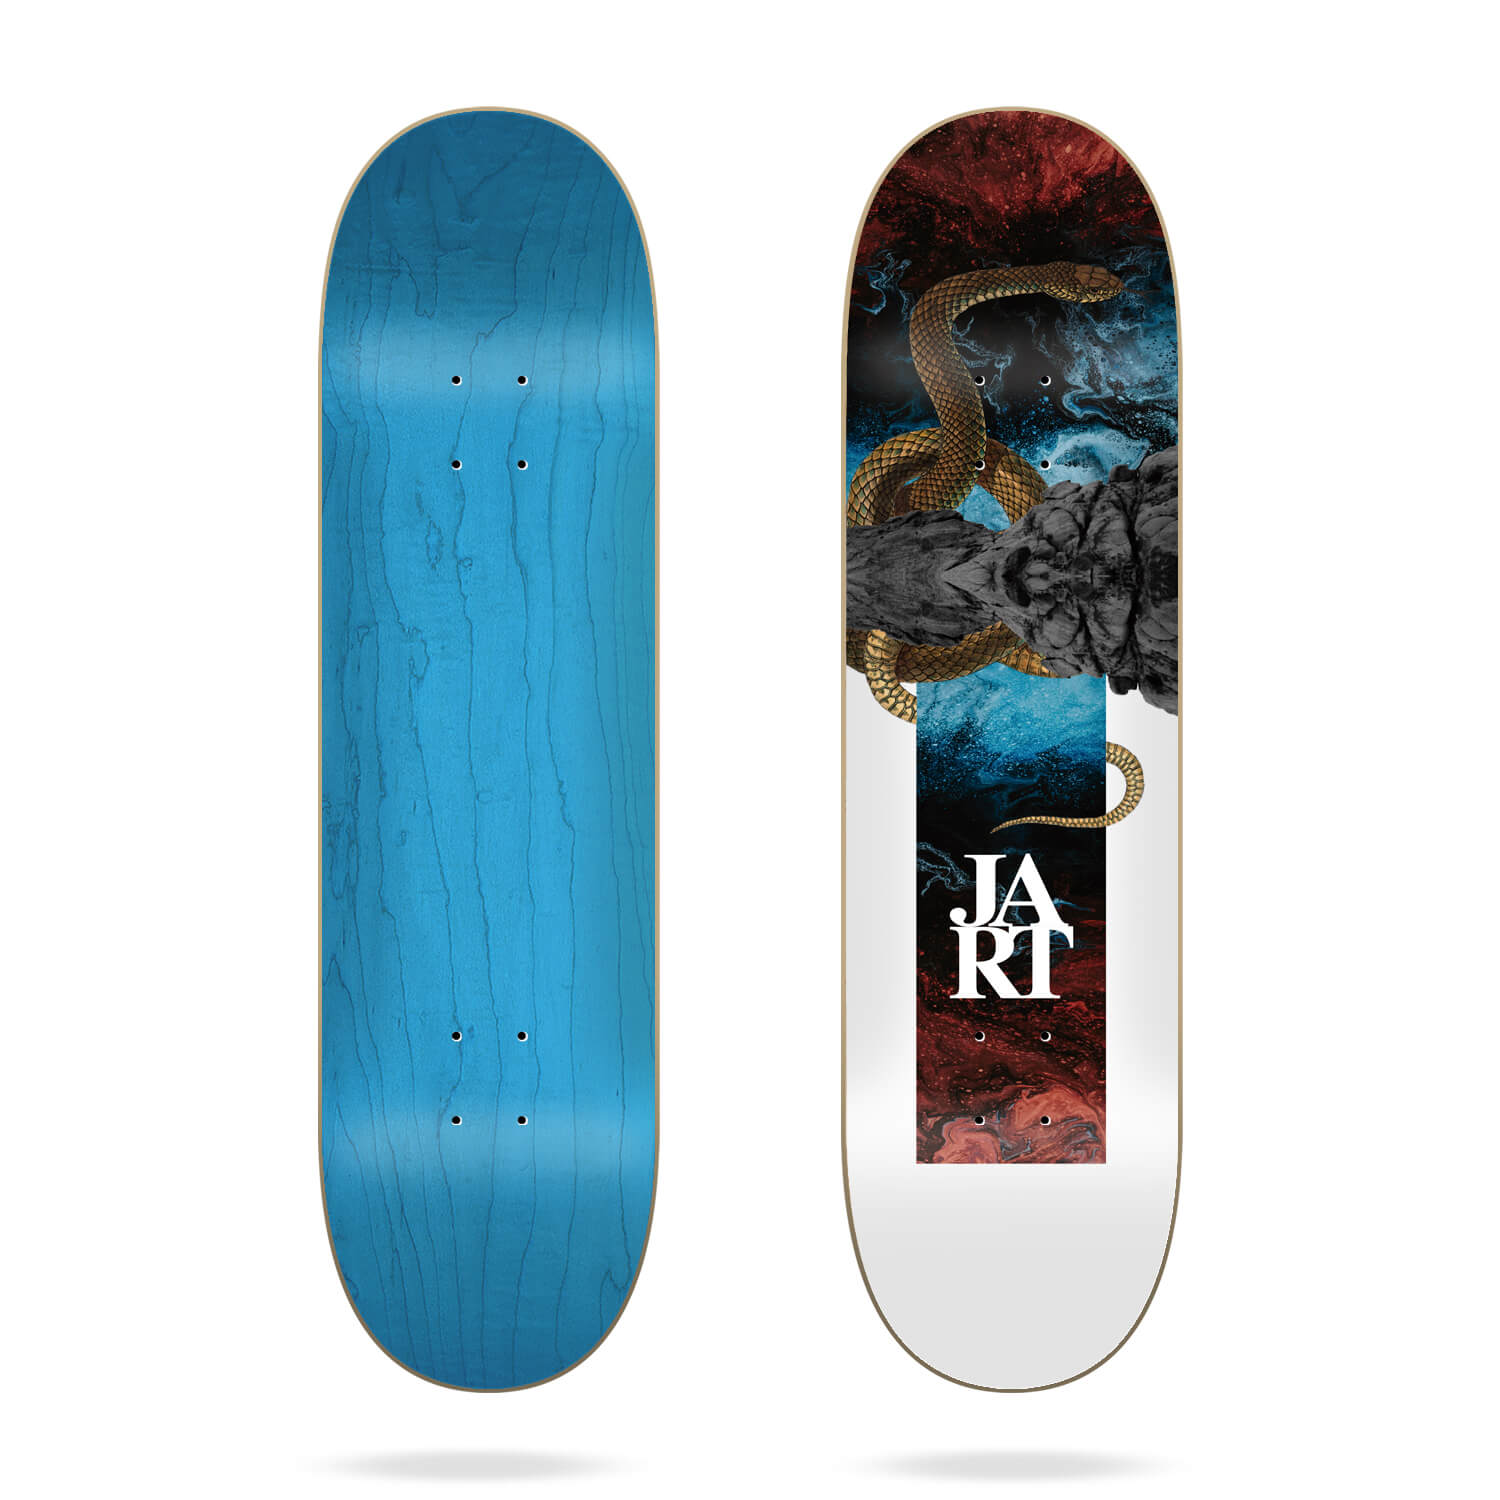 "Jart Abstraction 8.25"" deck"